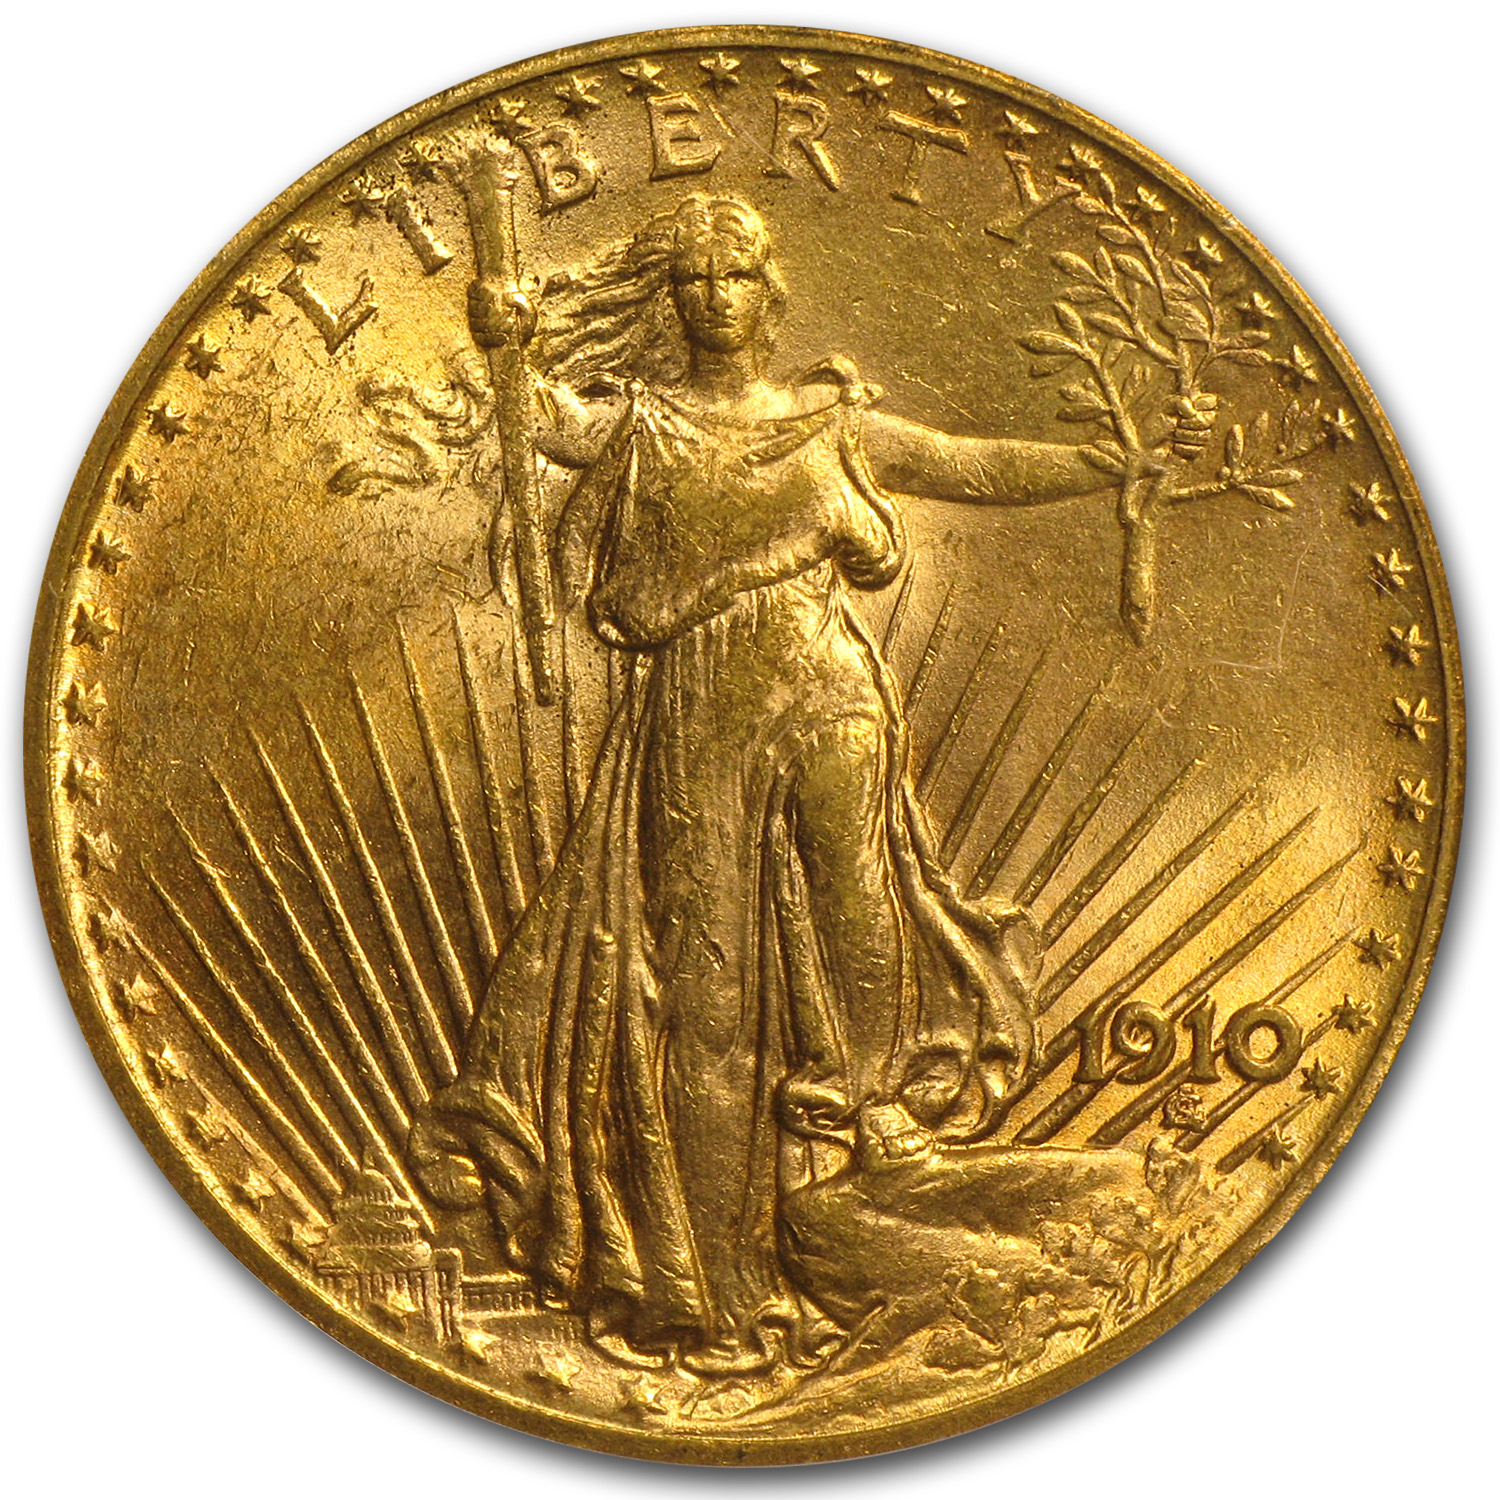 1910 $20 St. Gaudens Gold Double Eagle - MS-62 PCGS